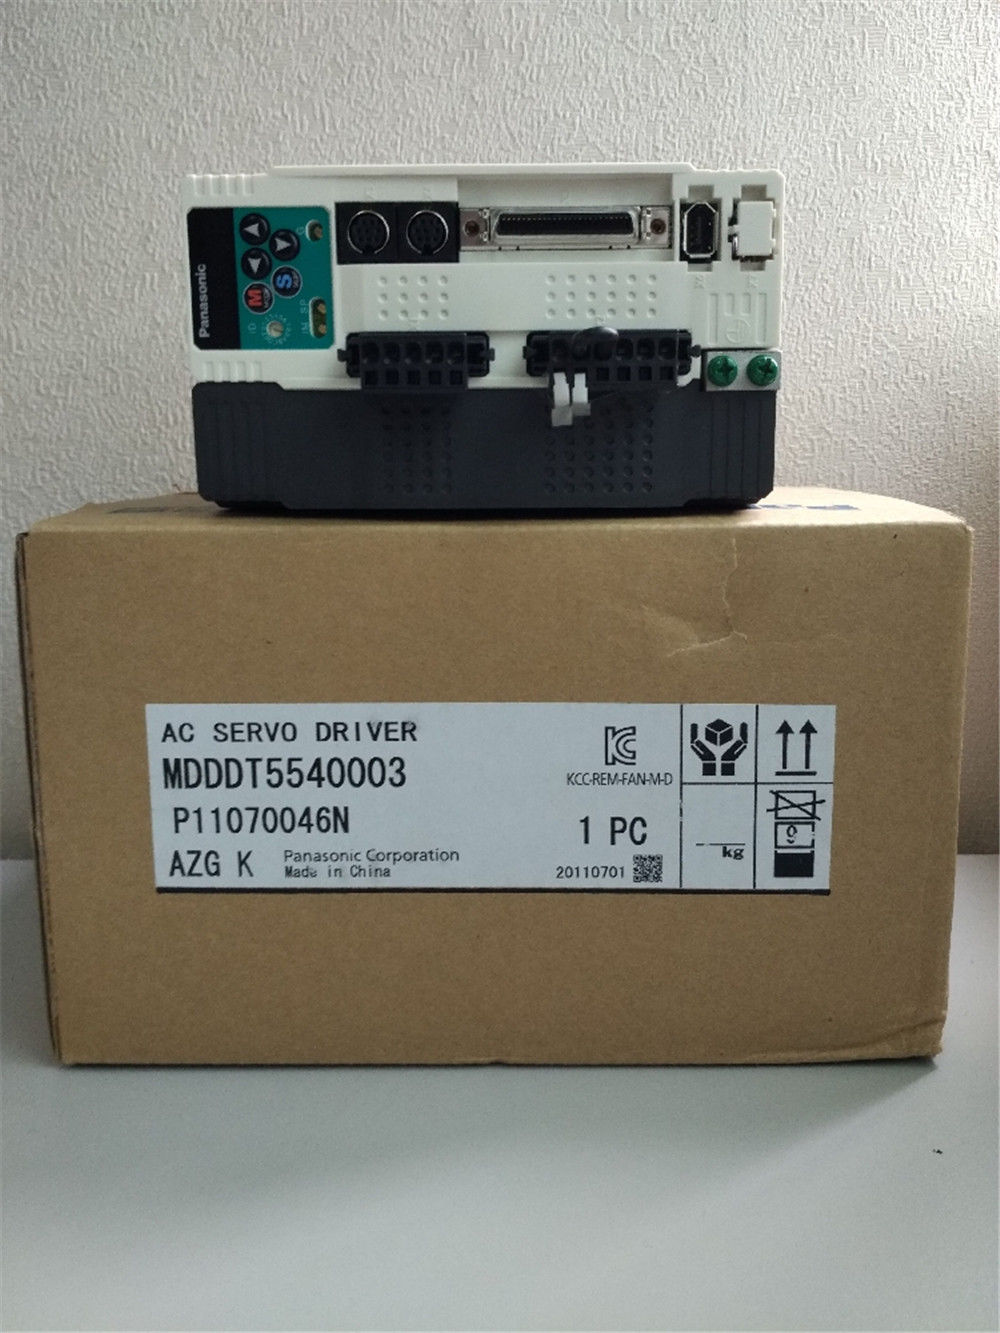 BRAND NEW PANASONIC AC Servo drive MDDDT5540003 in box